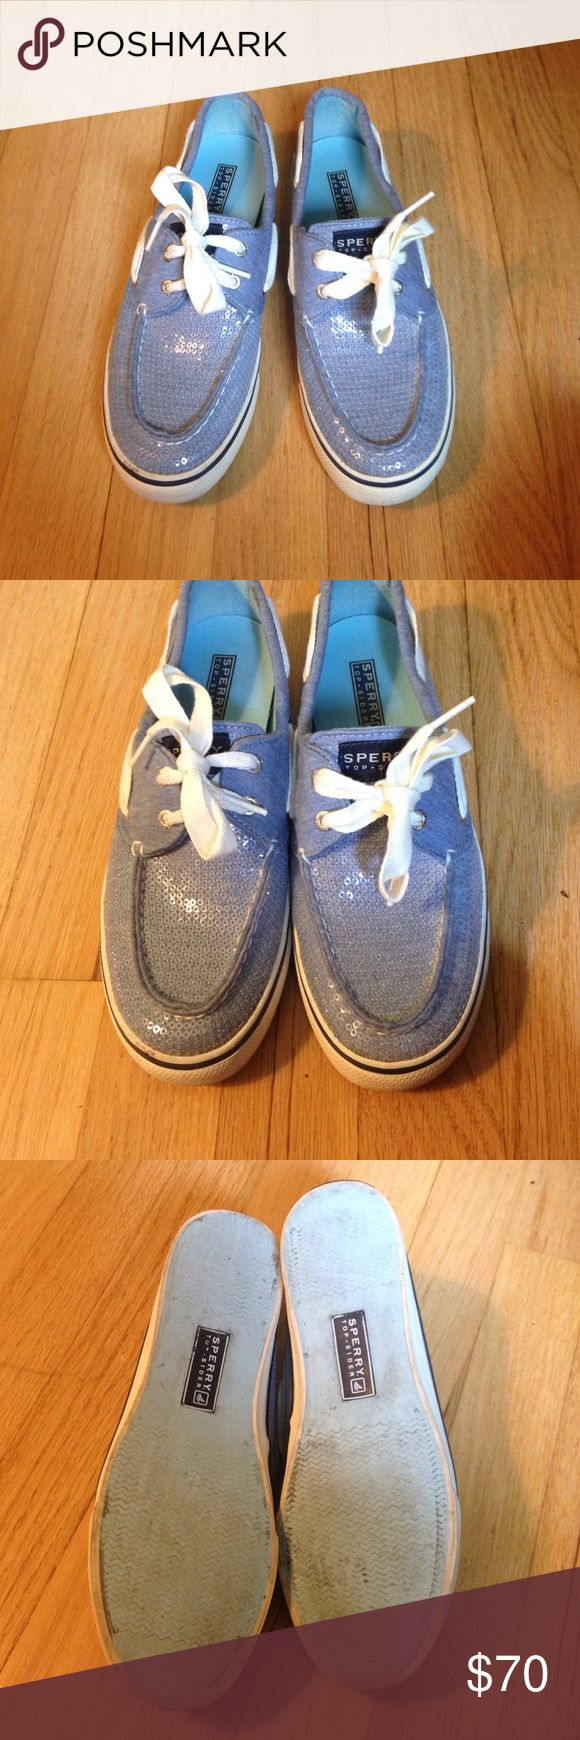 ⛵SALE!⛵️️ Sperry Boat Shoes - size 6.5 Sperry Shoes Light blue w/clear sequins - size 6.5. In great condition with very minimal signs of wear. See pics for details. Sperry Top-Sider Shoes